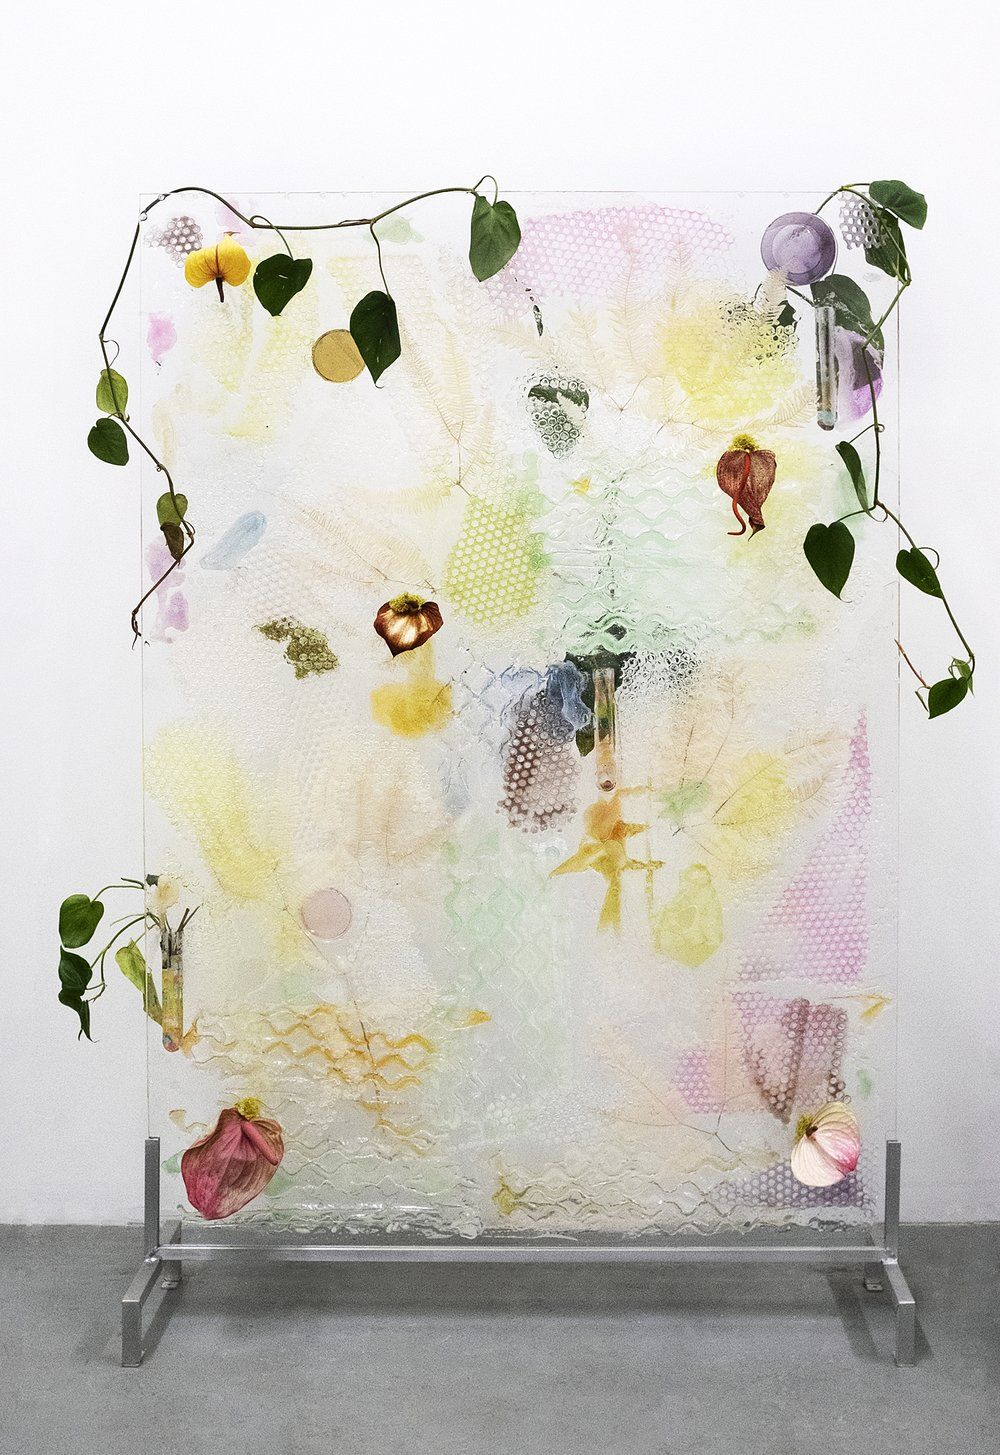 Spadix Inflorescence Wet Plate, 2018  Acrylic, resin, anthuriums, philodendron, gel fertilization balls,  dichroic glass, glass, moss, aluminum stand  36 x 52""